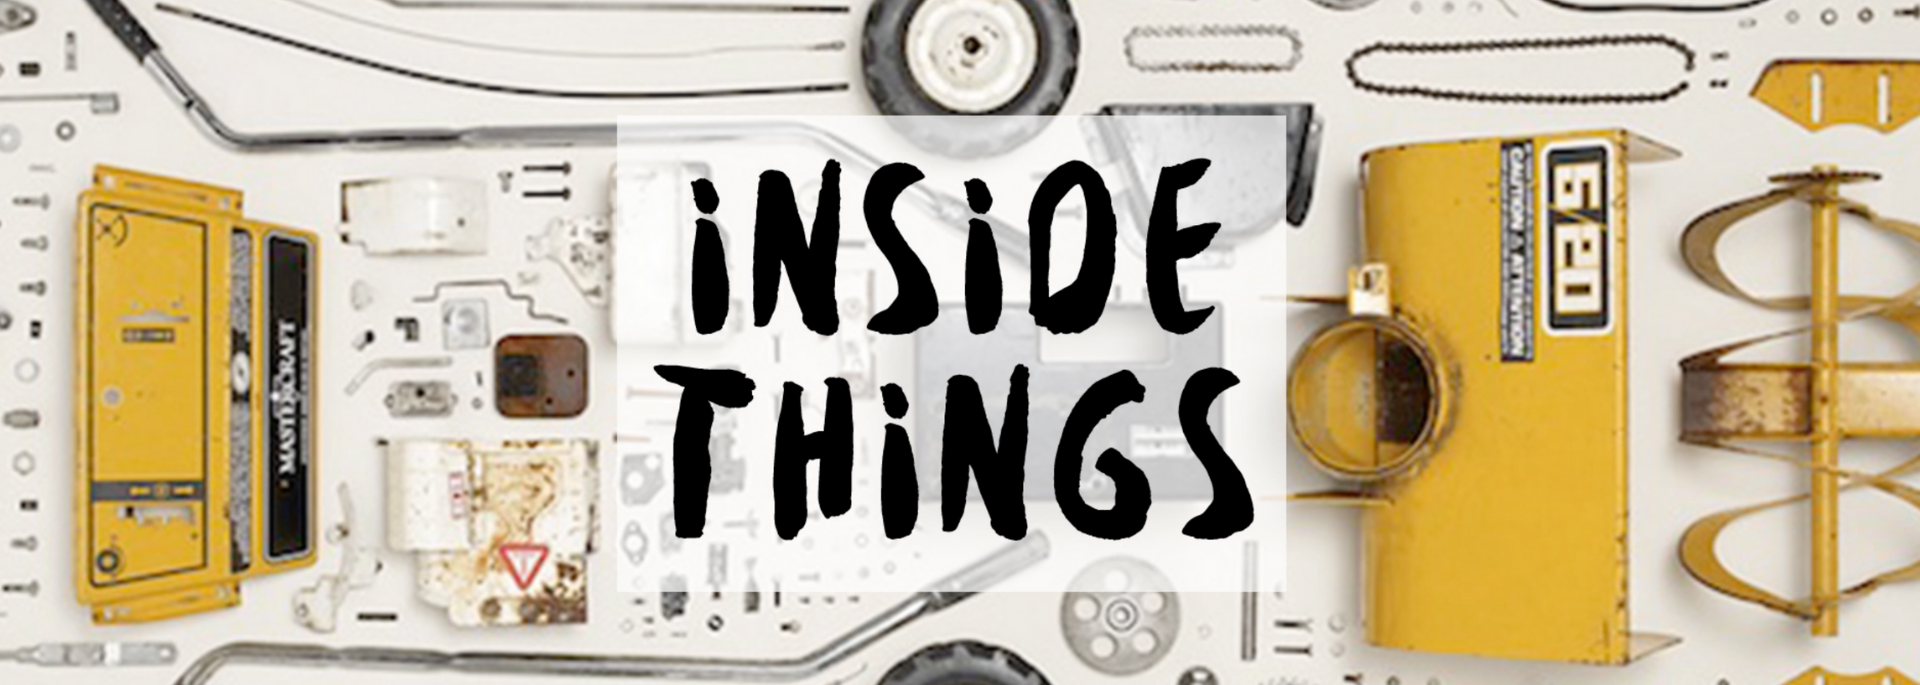 #INSIDE THINGS channel